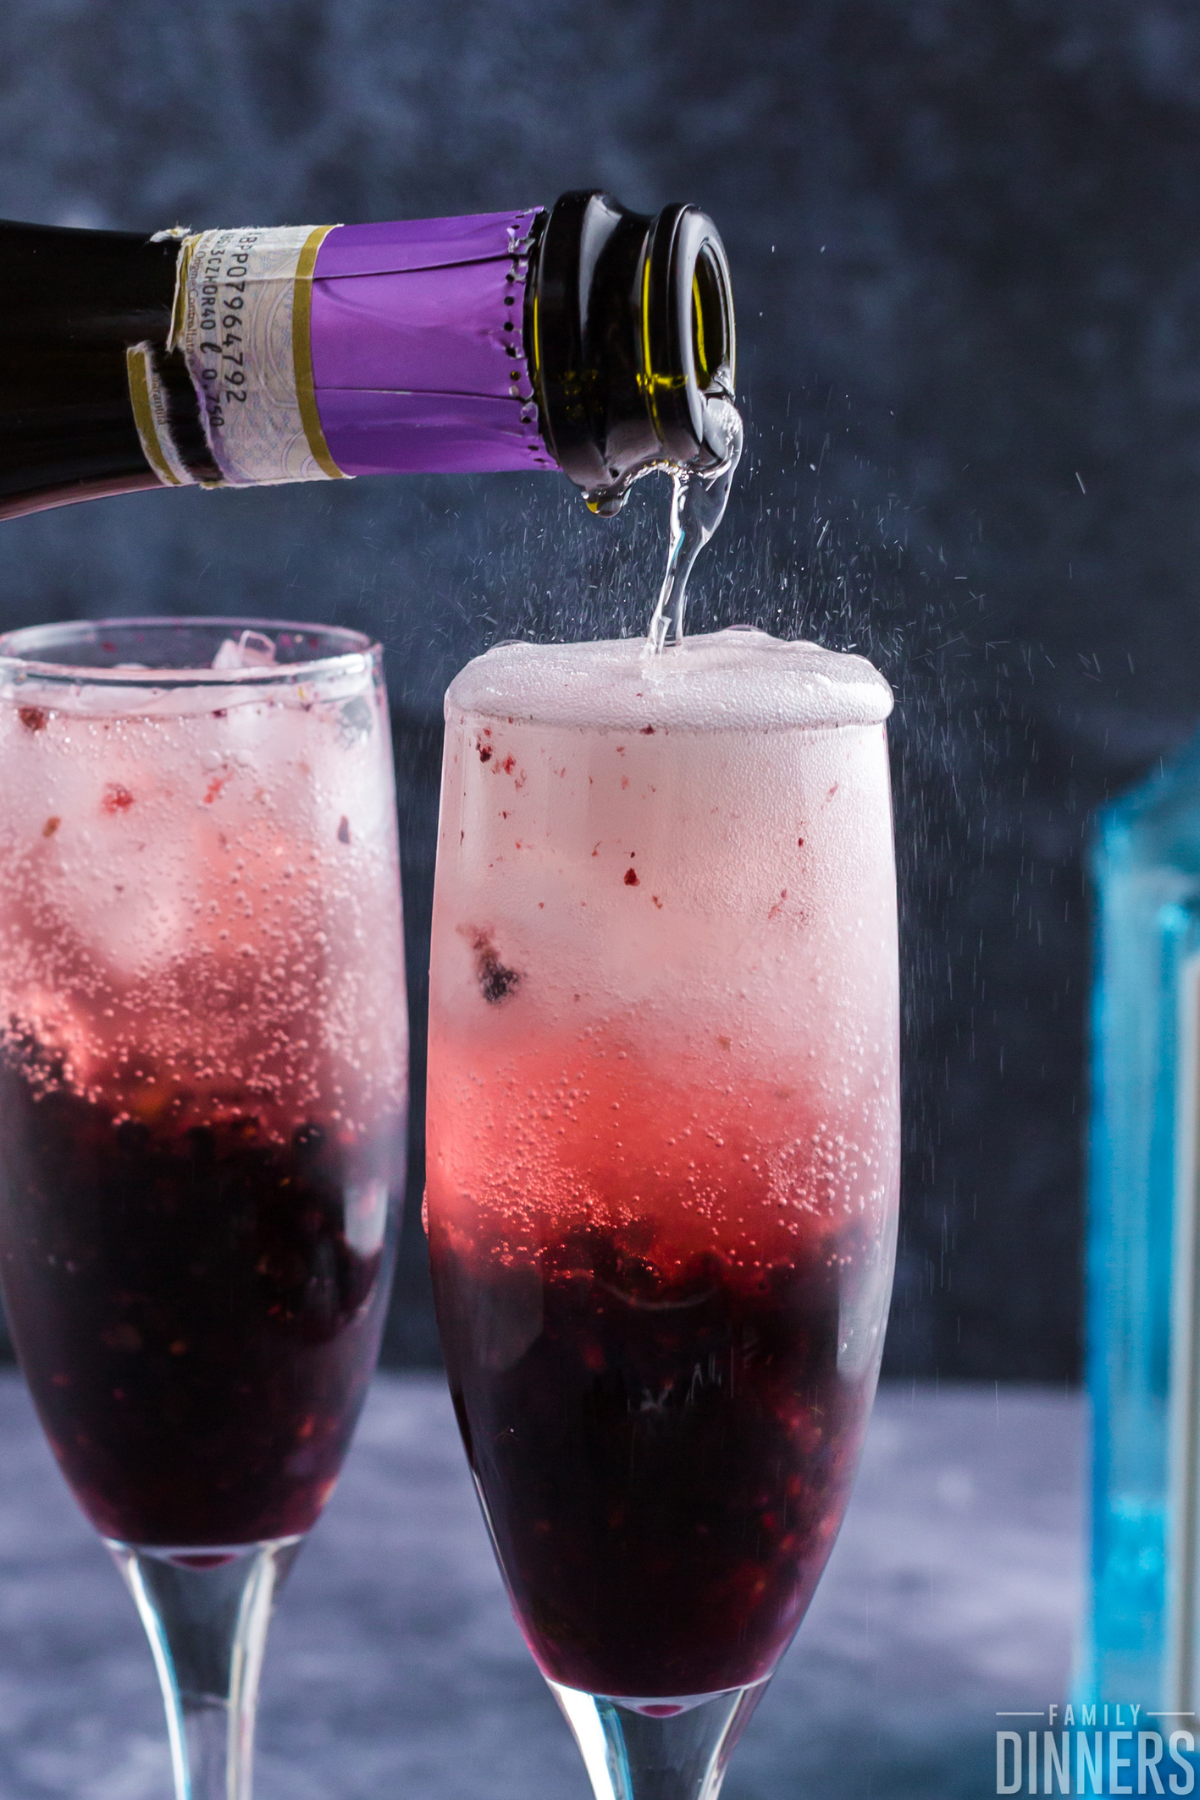 two champagne glasses with blackberry drink inside. Darker blackberry color on the bottom of the glass and light translucent blackberry color at the top. Each glass has fresh thyme and a blackberry on top. Lots of bubbles inside the glass.